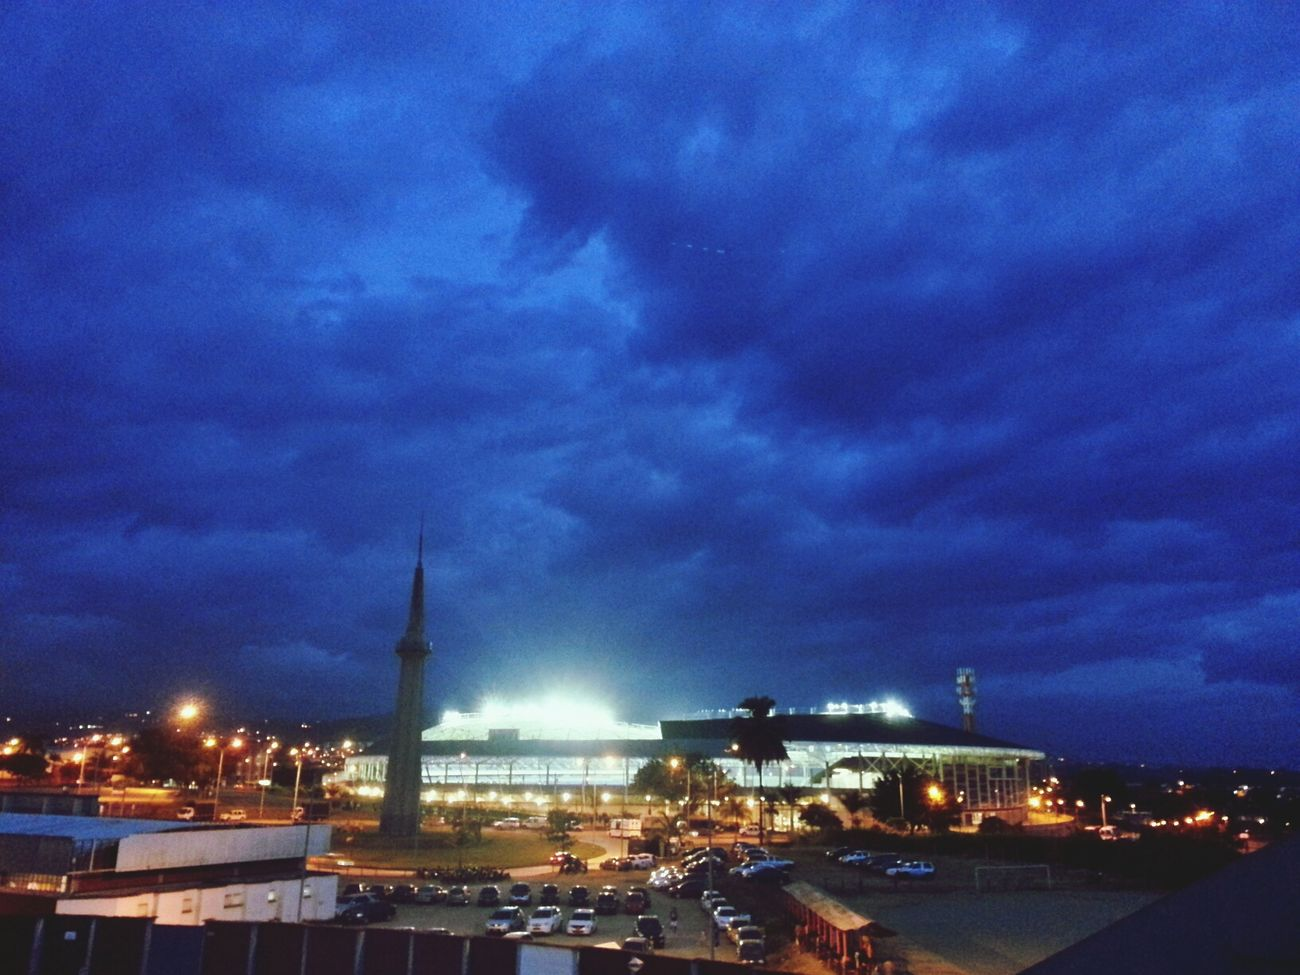 Futbol Stadium. Olympic Village. Big storm above in the sky. Stadium Sky And Clouds Pereira